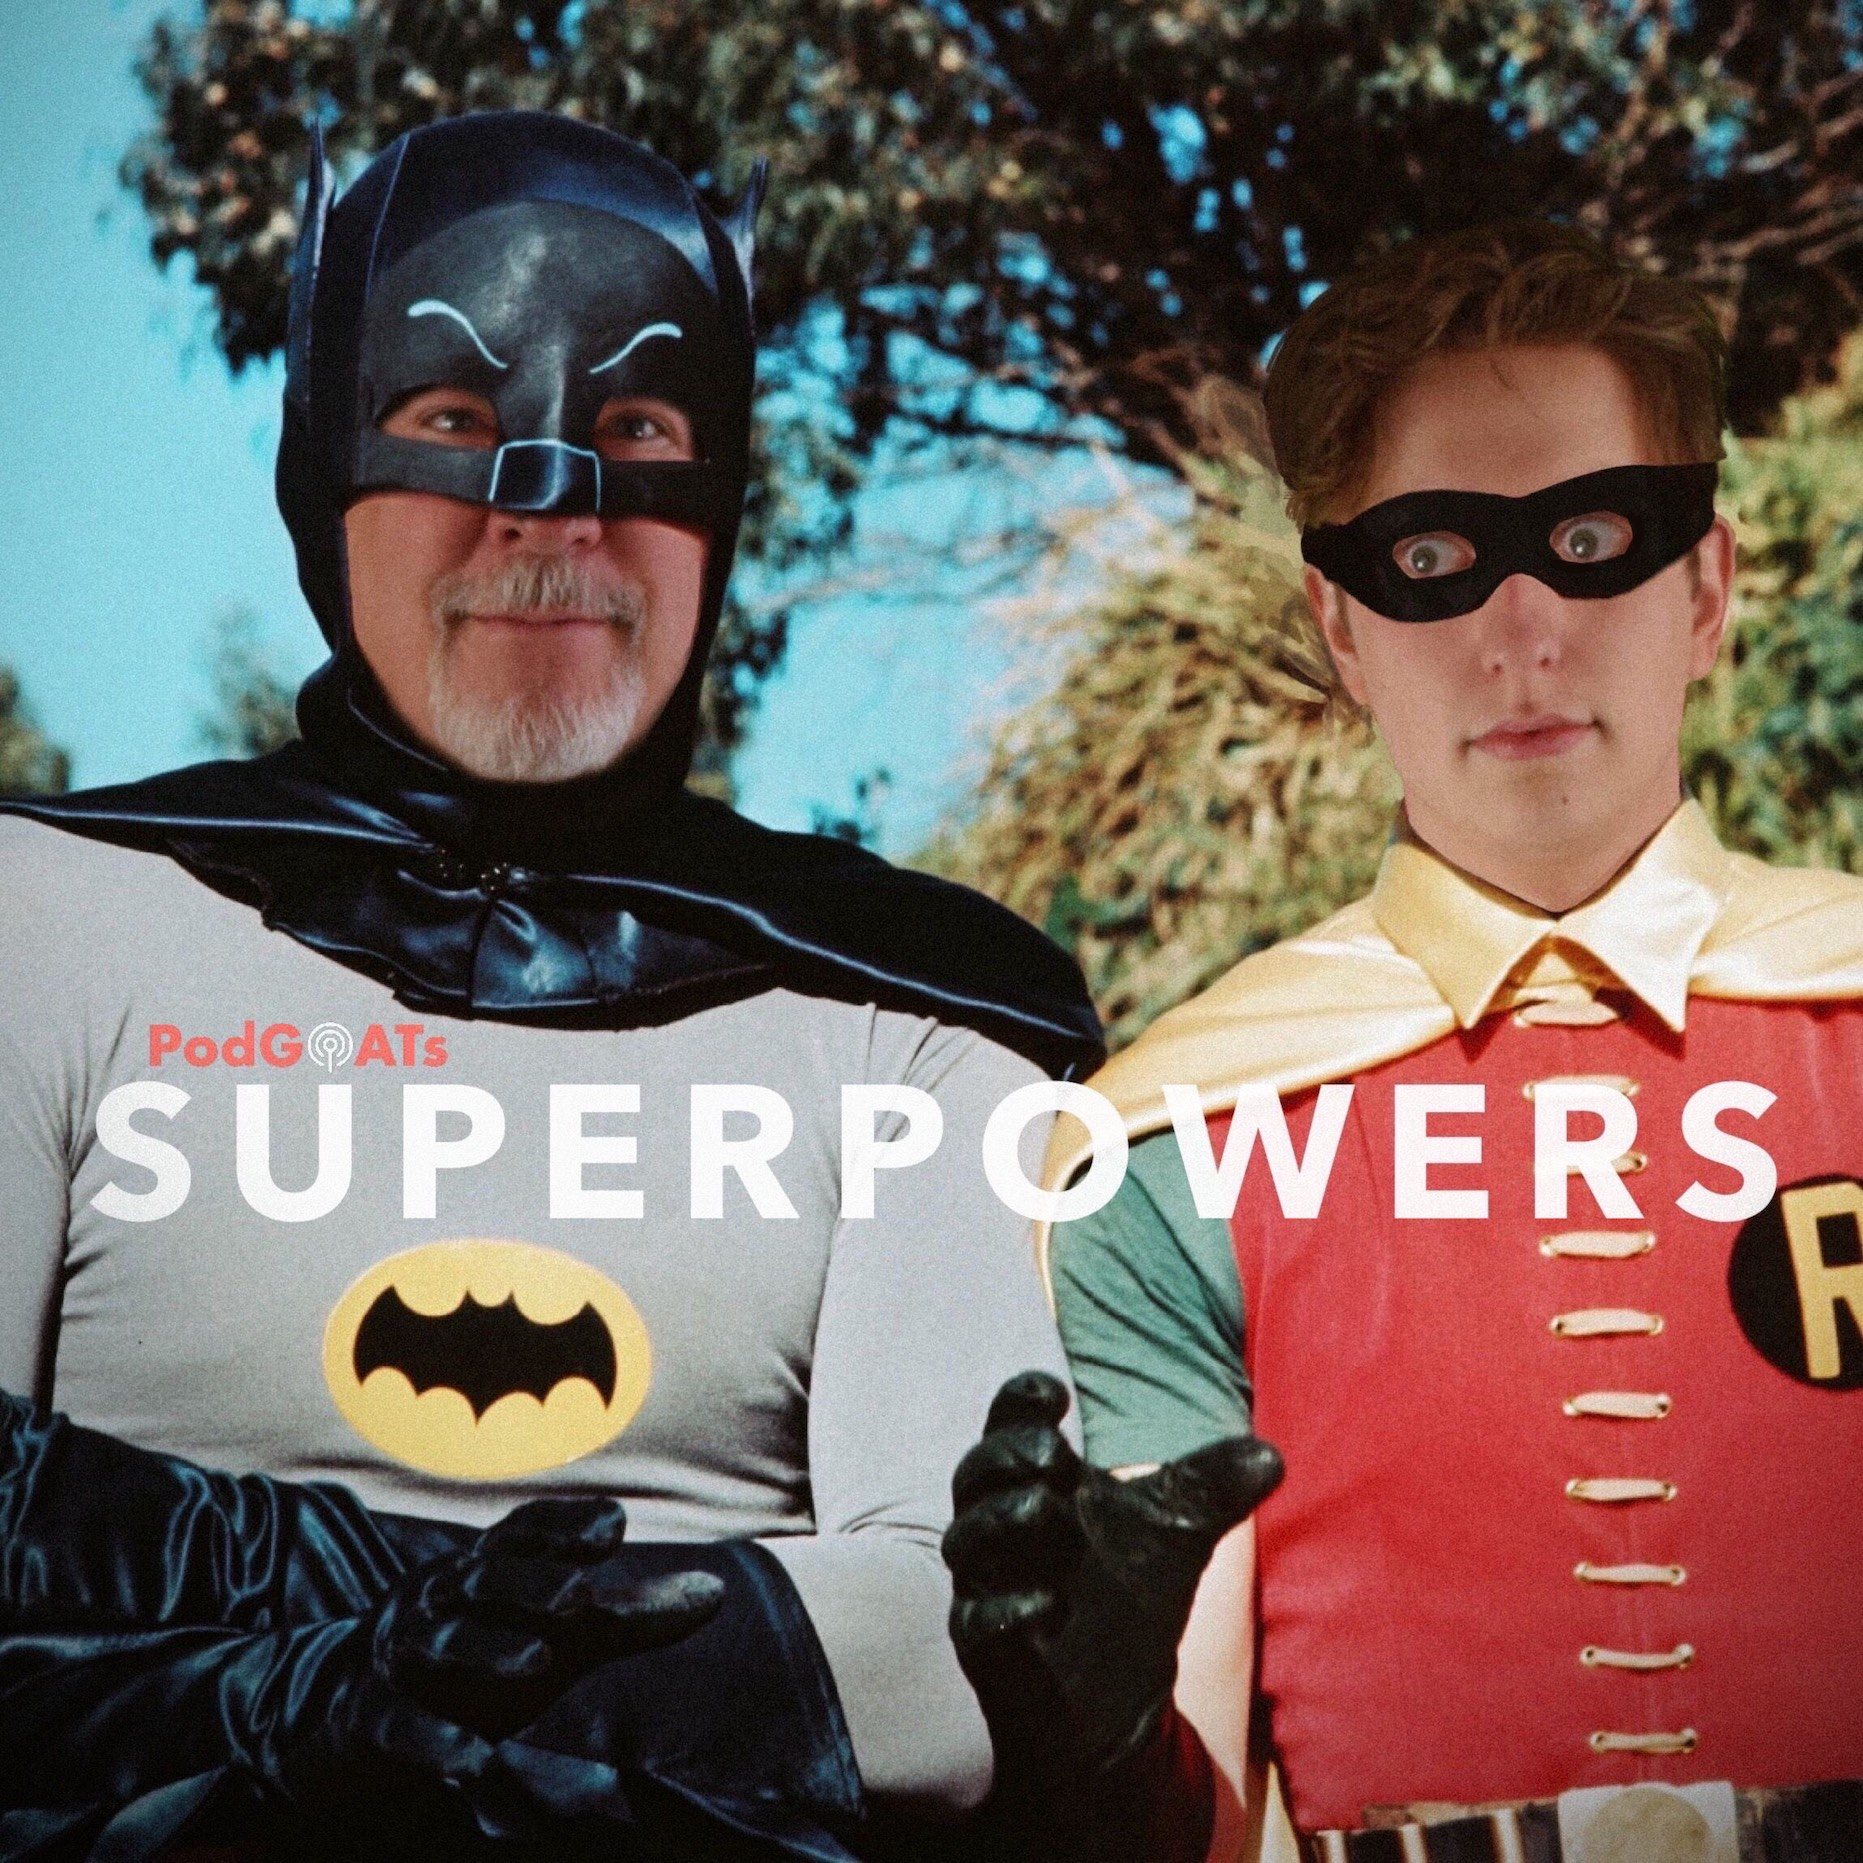 Superpowers: Real People with Real Powers